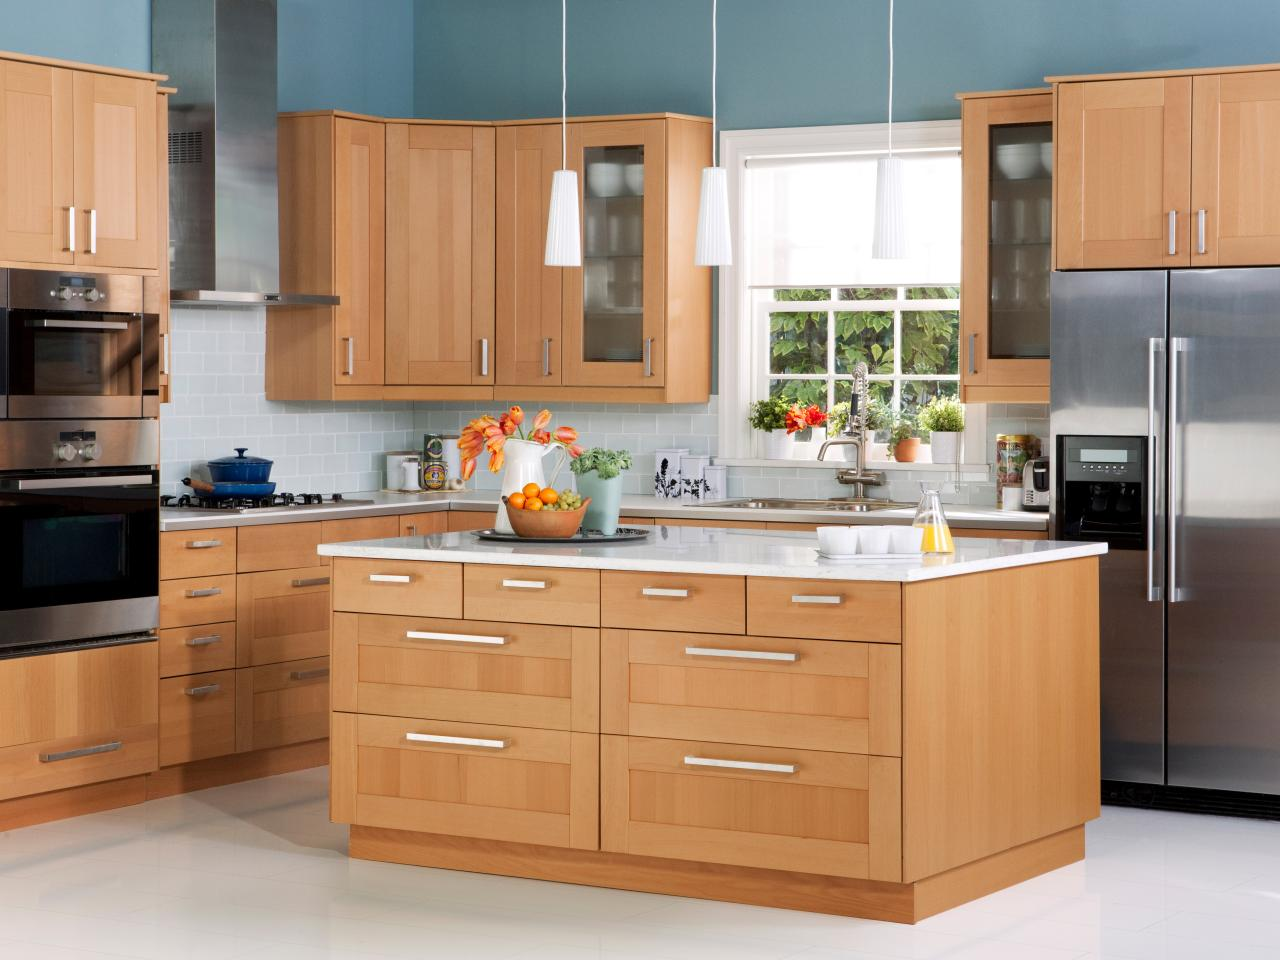 Ikea kitchen space planner kitchen ideas design with for Kitchen cabinets at ikea